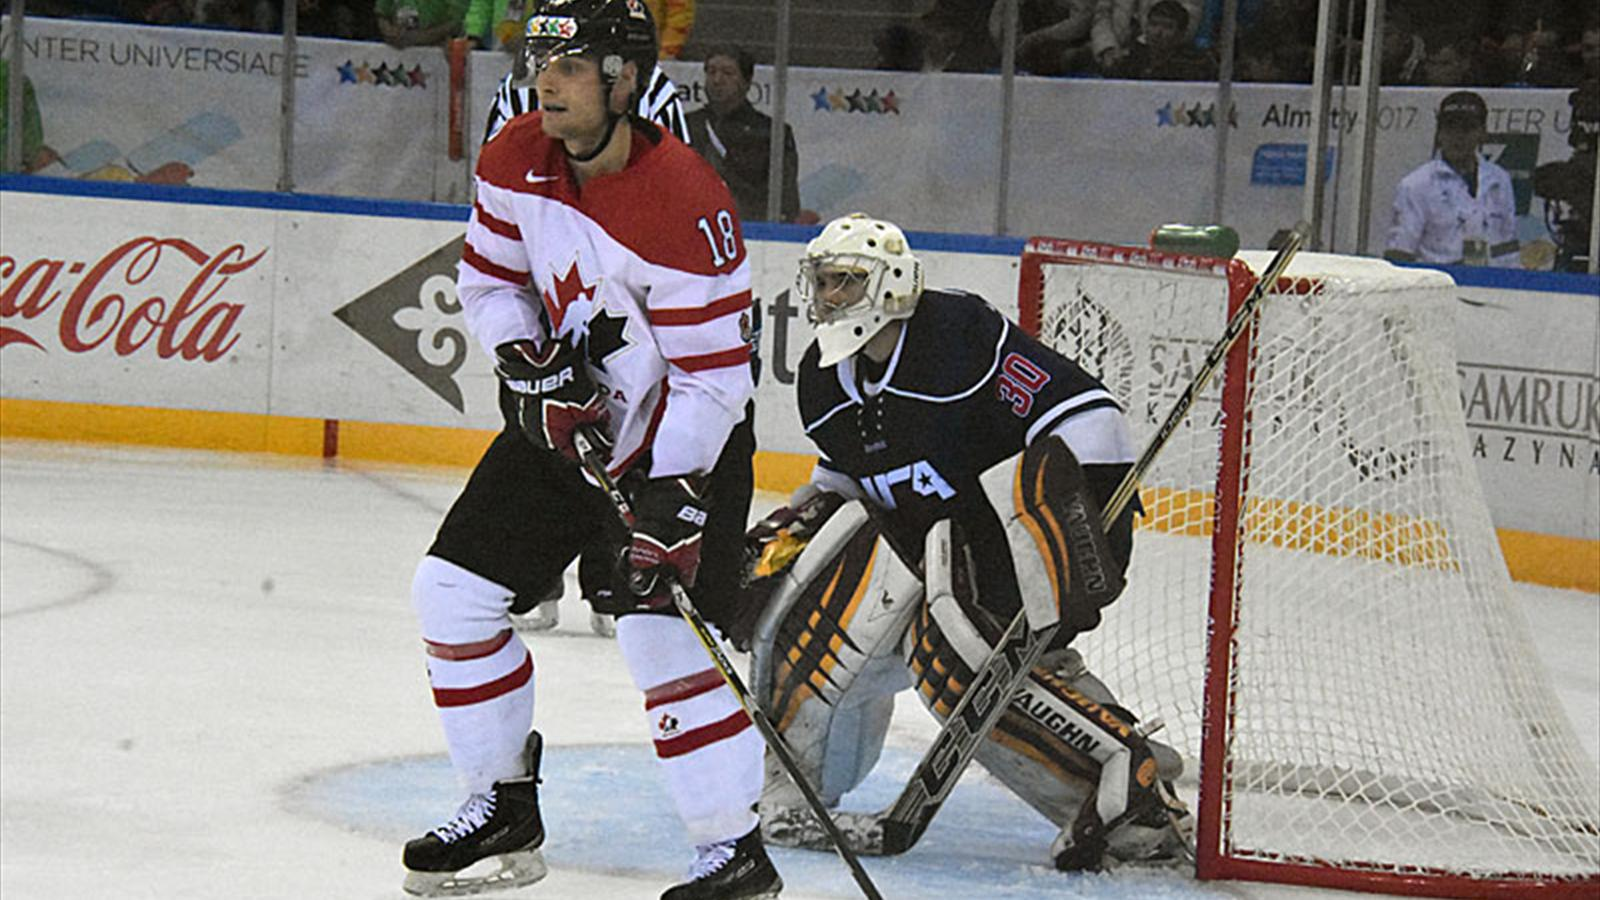 Wualmaty2017 update ice hockey day 1 university - University league tables french ...